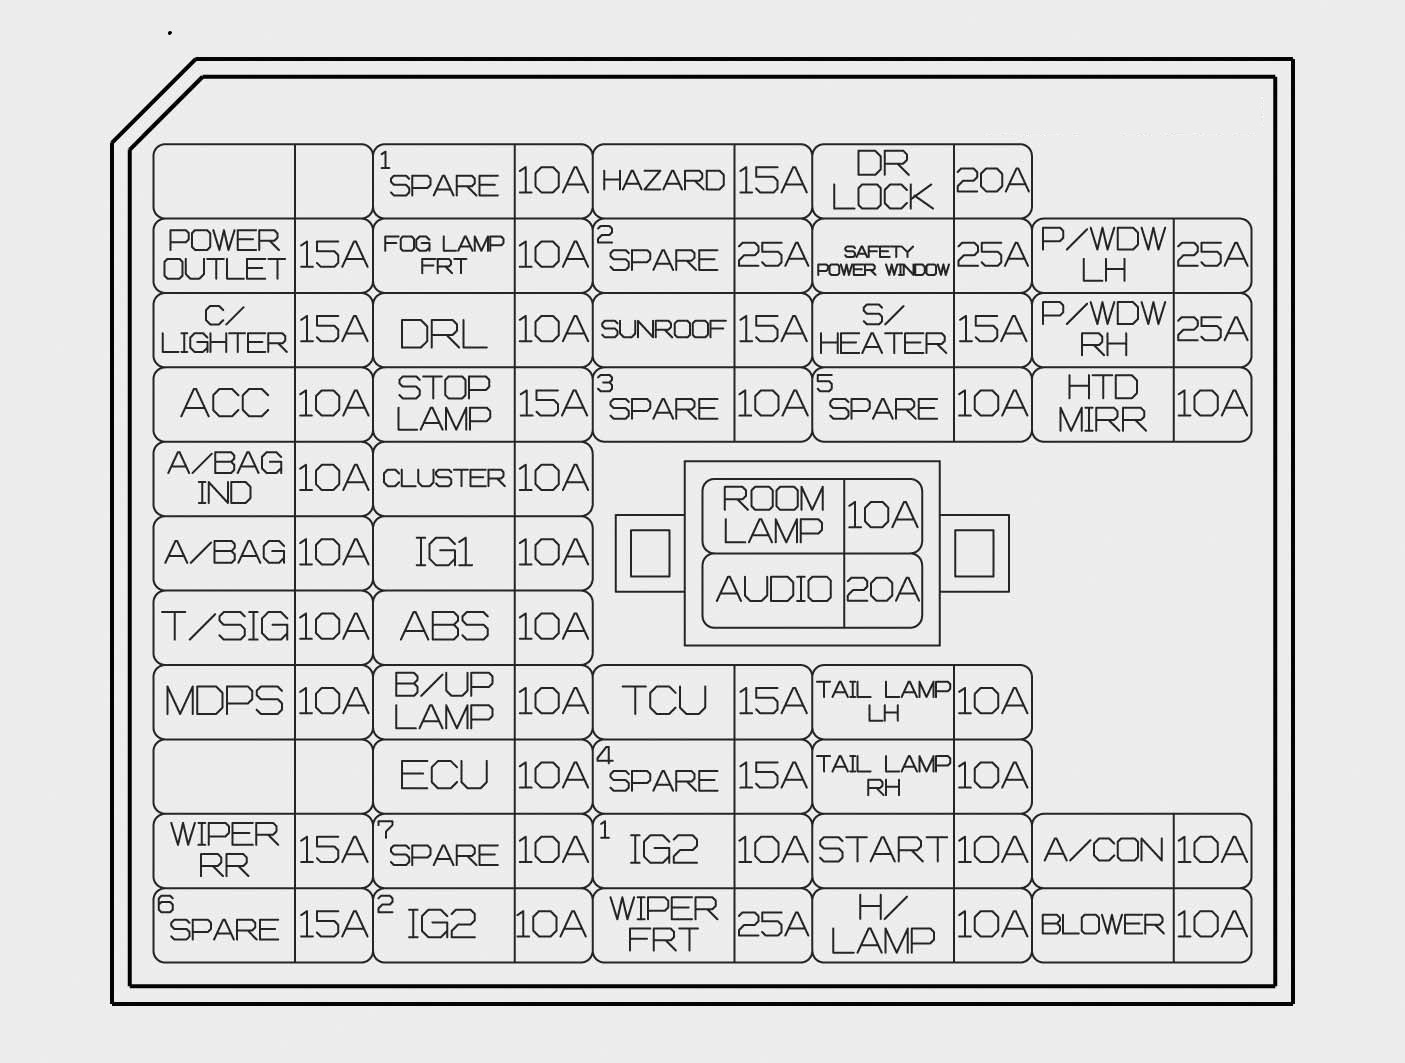 Hyundai Sonata 2015 ndash fuse box diagram Auto Genius